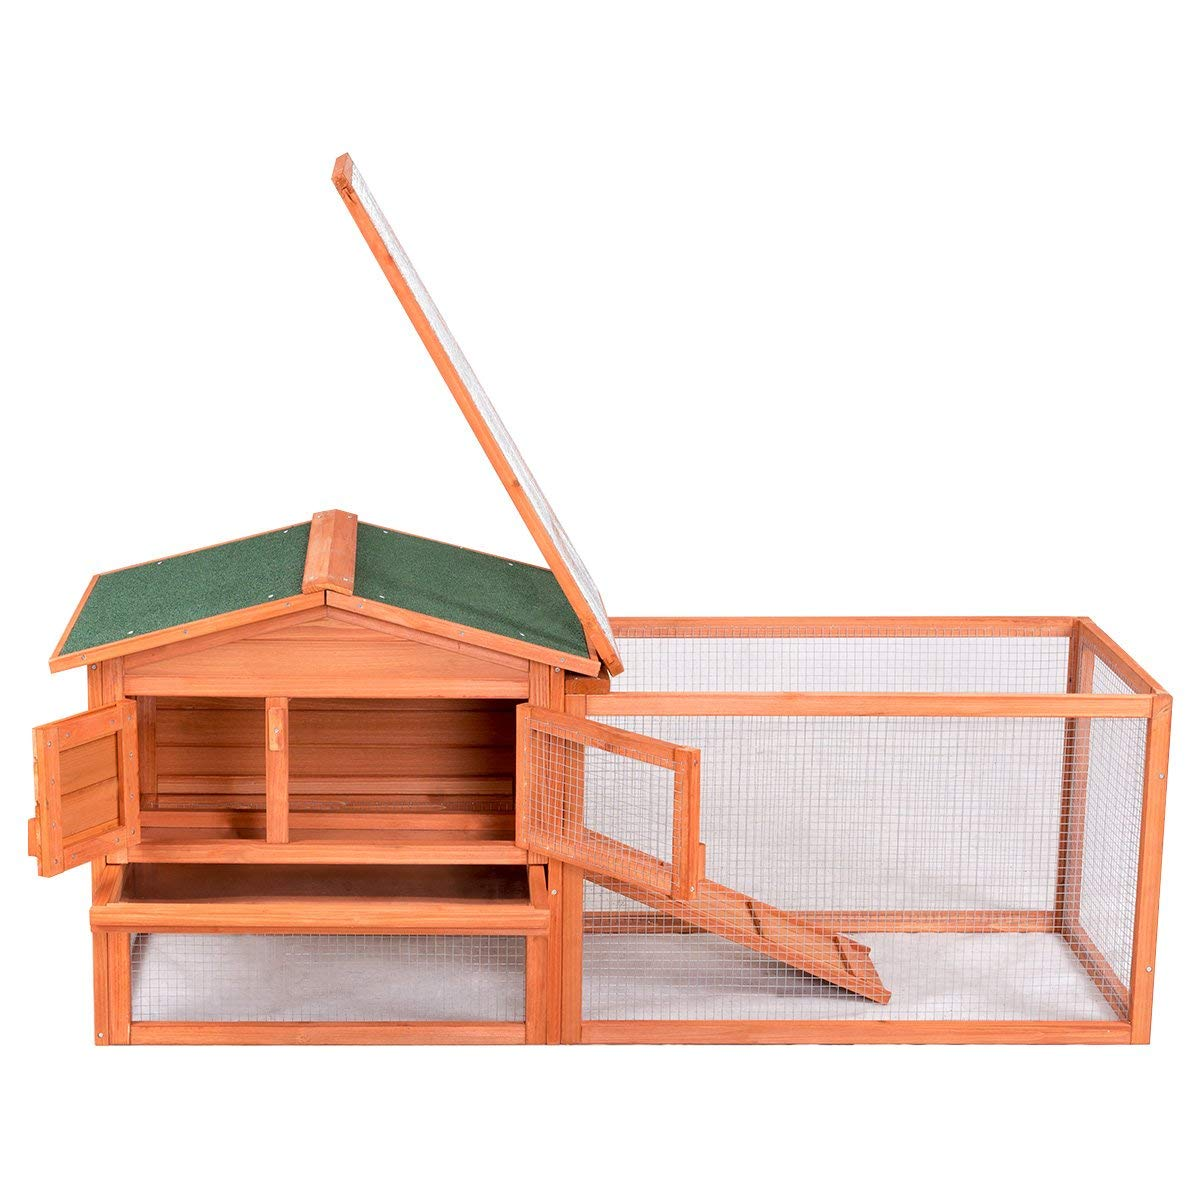 Tangkula Chicken Coop Outdoor Wooden Chicken Coop Garden Backyard Farm Bunny Hen House Rabbit Hutch Small Animal Cage Pet Supplies for Chicken, Duck, Rabbit, etc (61.5'' x 20.5'' x 27''(L x W x H)) by Tangkula (Image #7)